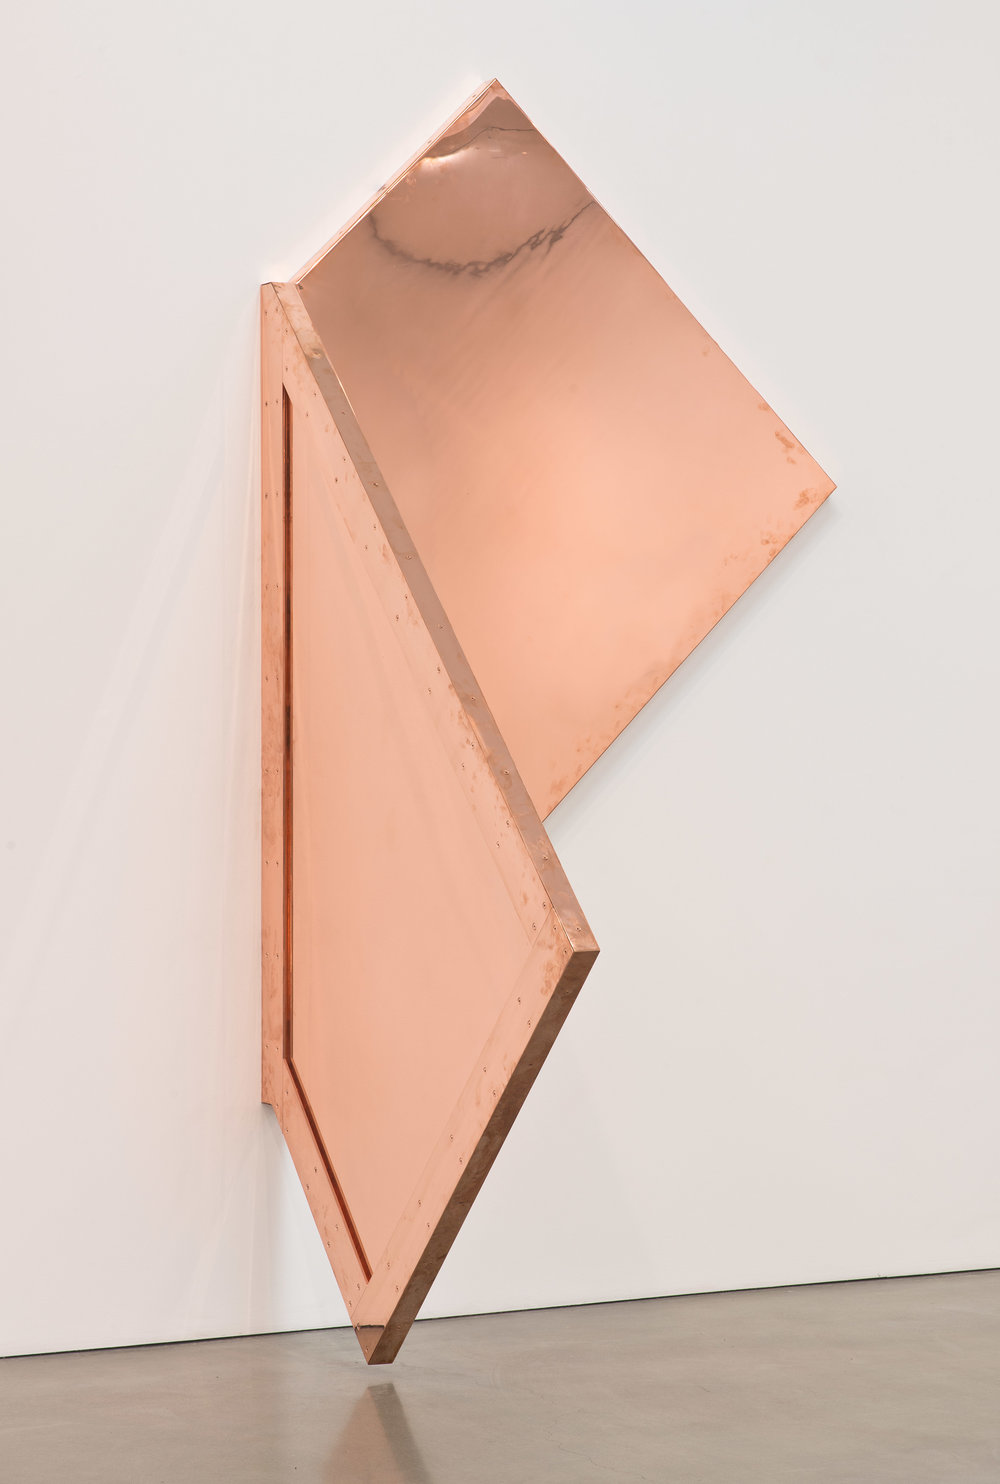 "Copper Surrogate (60"" x 120"" 48 ounce C11000 Copper Alloy, 90º Bend, 77 3/4"" 45º Diagonal / 135º Antidiagonal Bisection: February 20/April 5, 2014, Los Angeles, California)   2014  Polished copper  110 x 60 x 50 inches   Surrogates (Full Sheet, Art Handling), 2011–    Selected Bodies of Work, 2014"